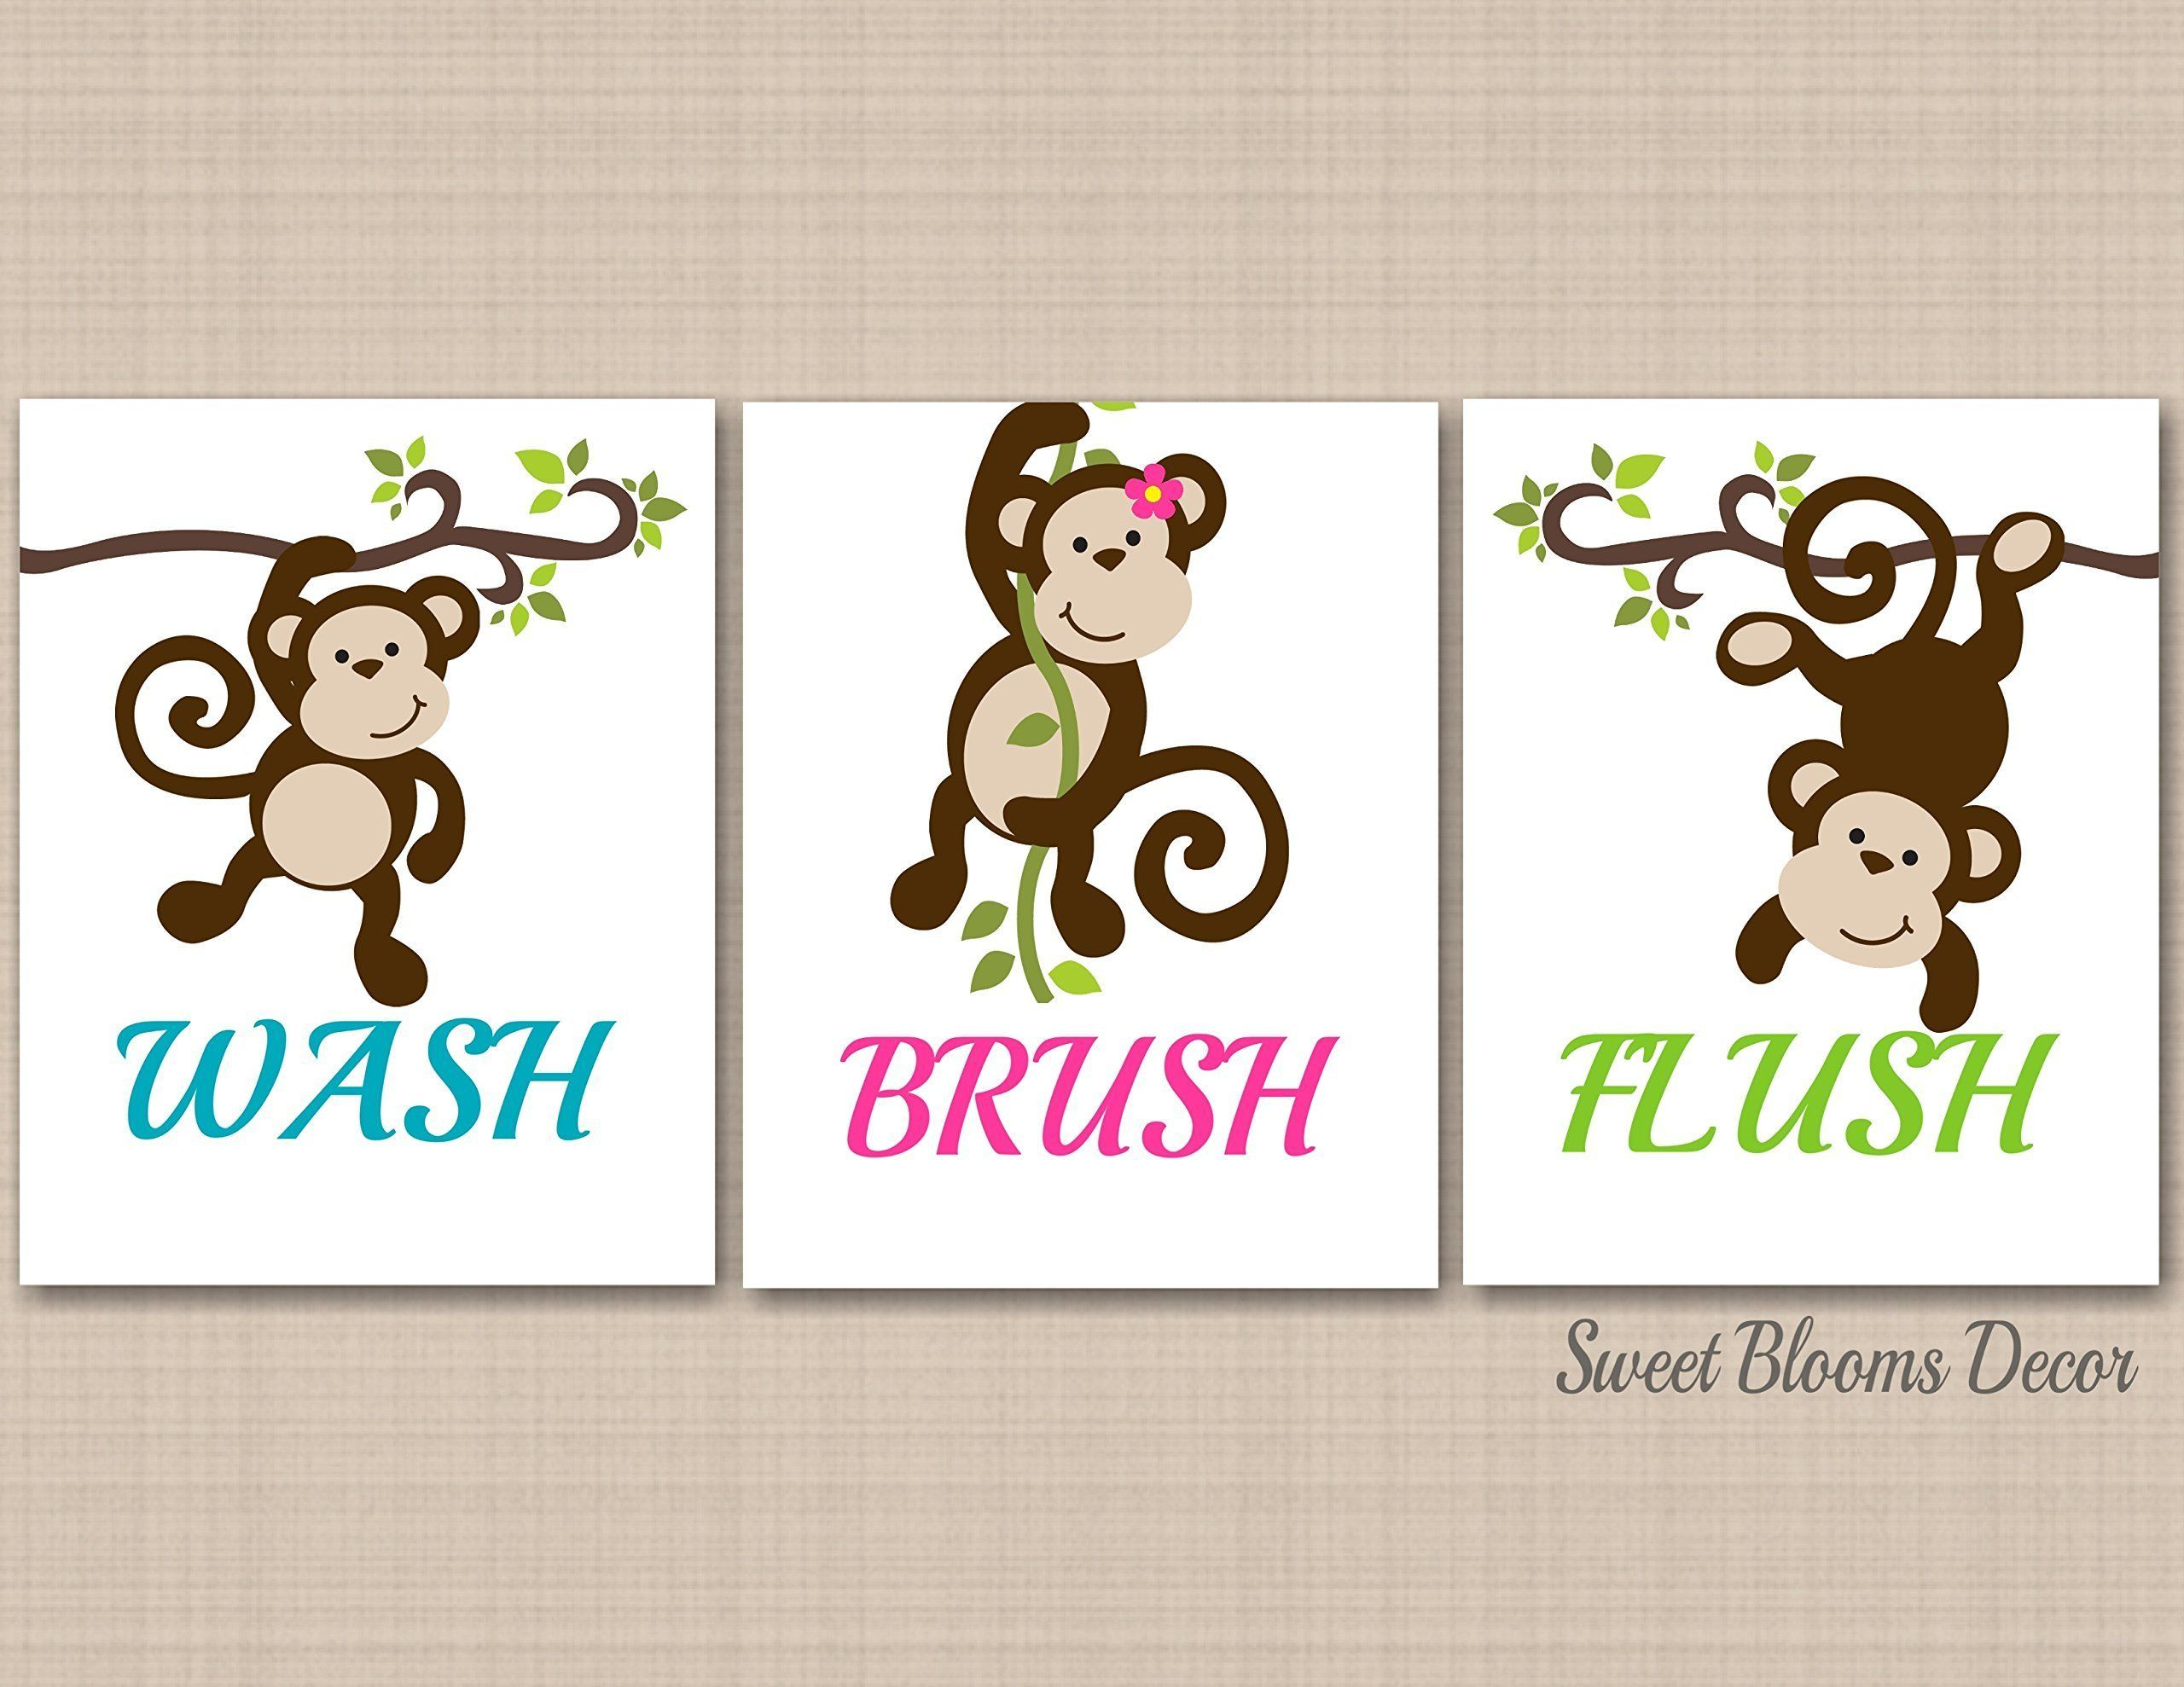 Monkey Décor,Monkey Bathroom Wall Art,Monkey Bathroom Wall Decor,Brother  Sister Bathroom